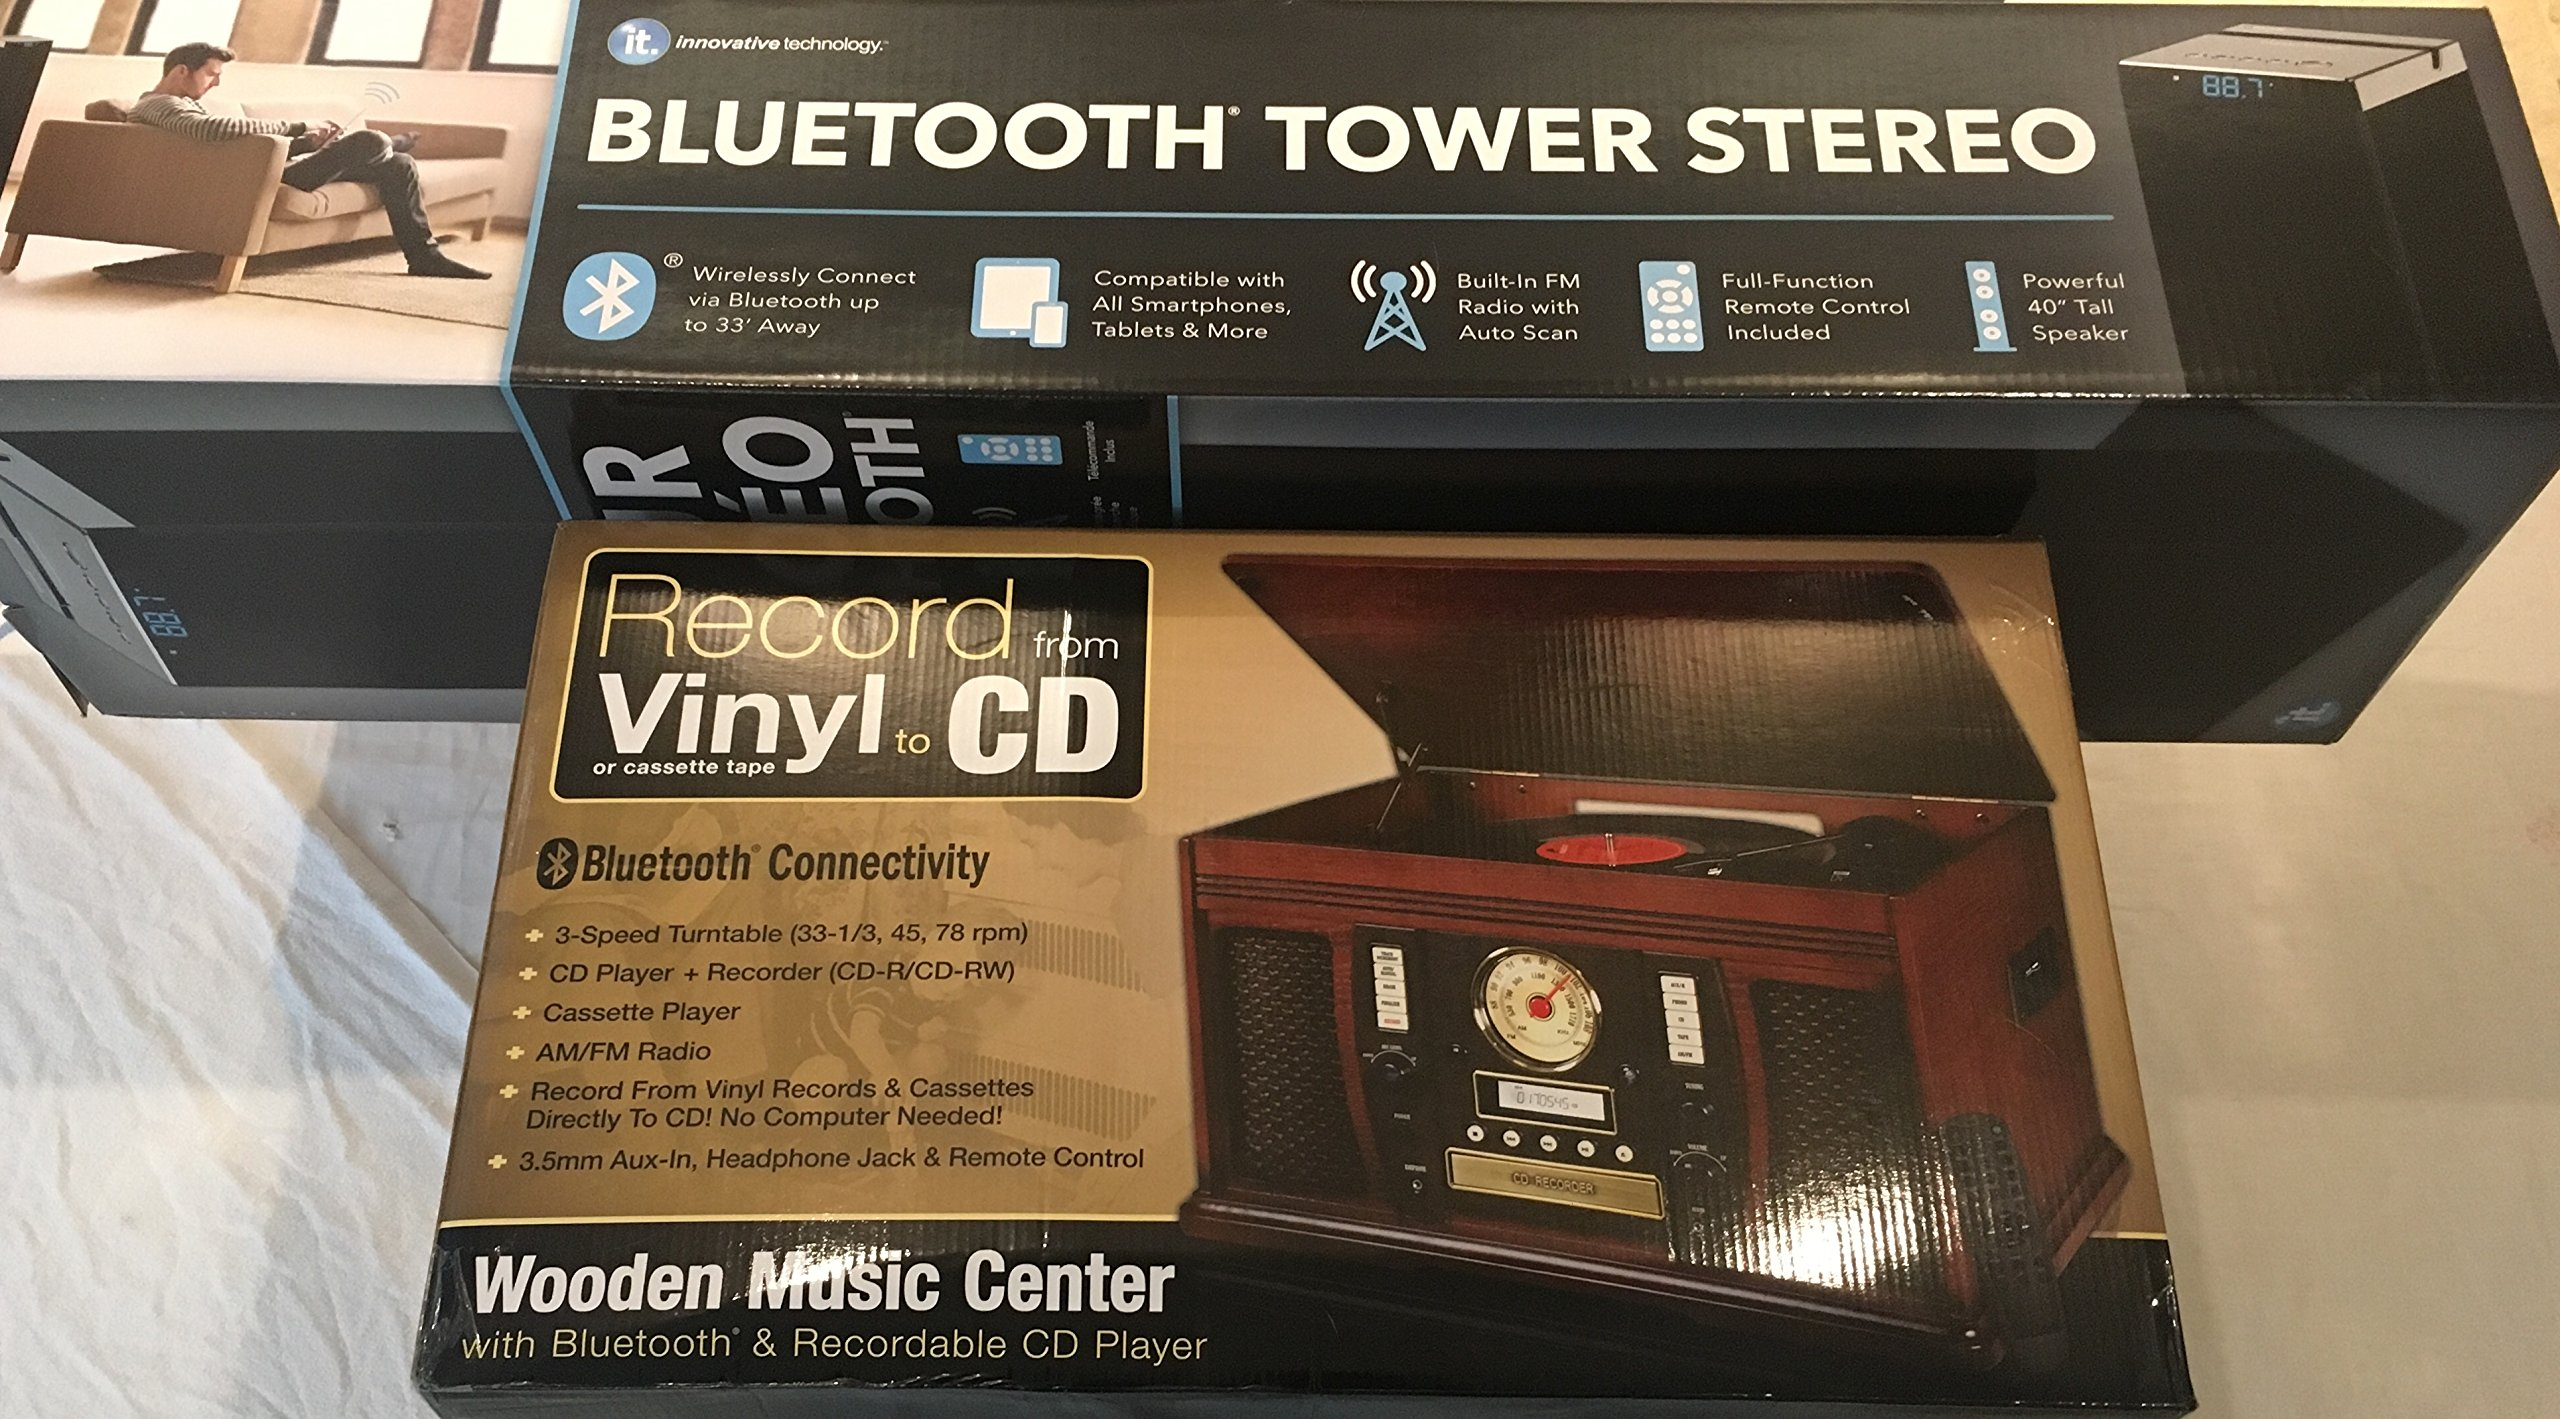 Bundle Pack - Victrola Nostalgic Aviator Wood 7-in-1 Bluetooth Turntable Entertainment Center, Mahogany - ITSB-300-BLK 40-in Tall Tower Bluetooth Stereo System